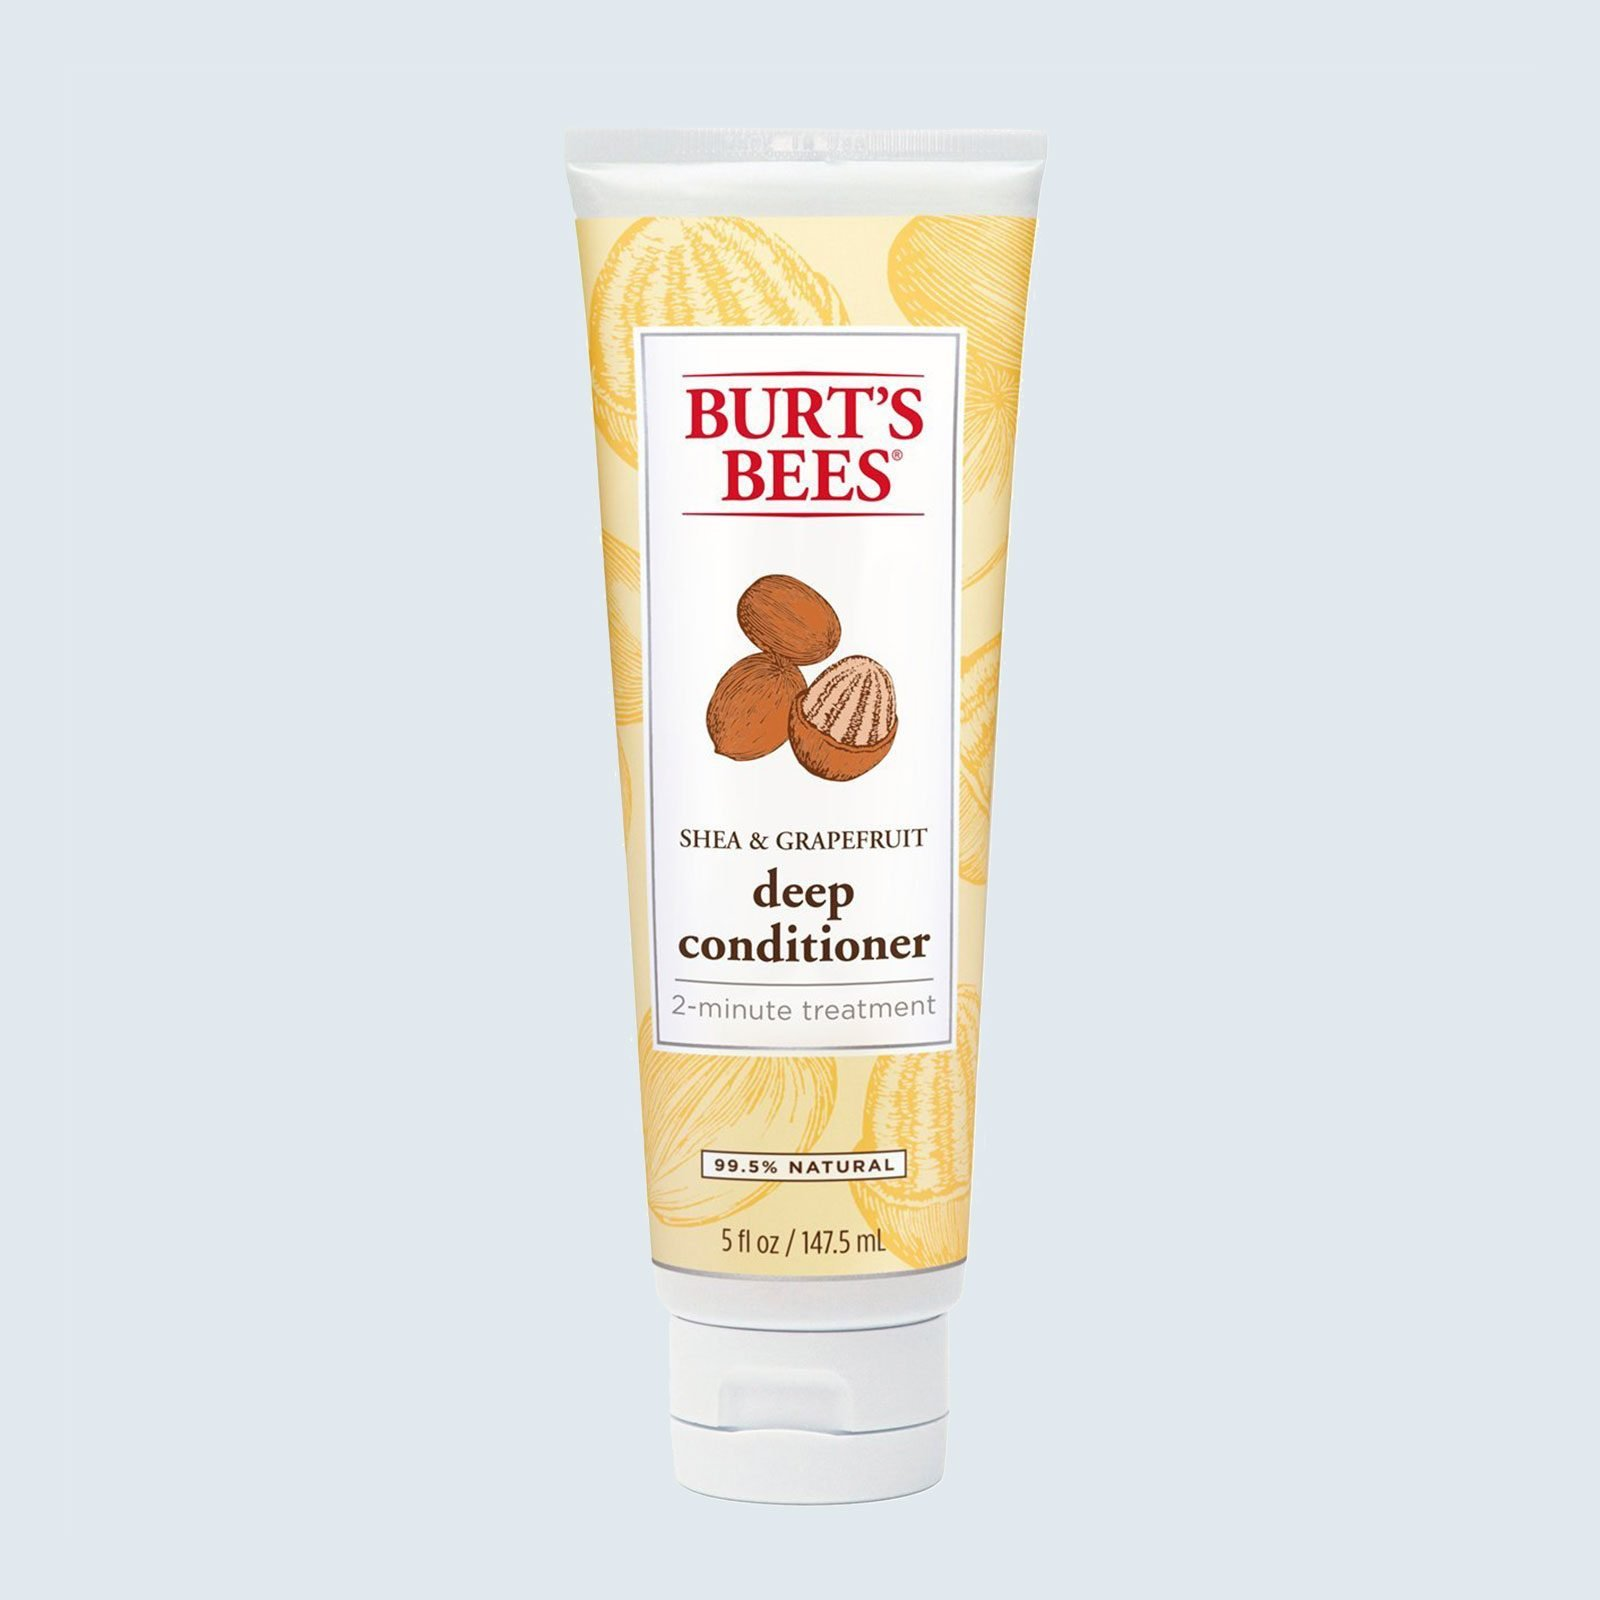 Best natural conditioner: Burt's Bees Shea and Grapefruit Deep Conditioner